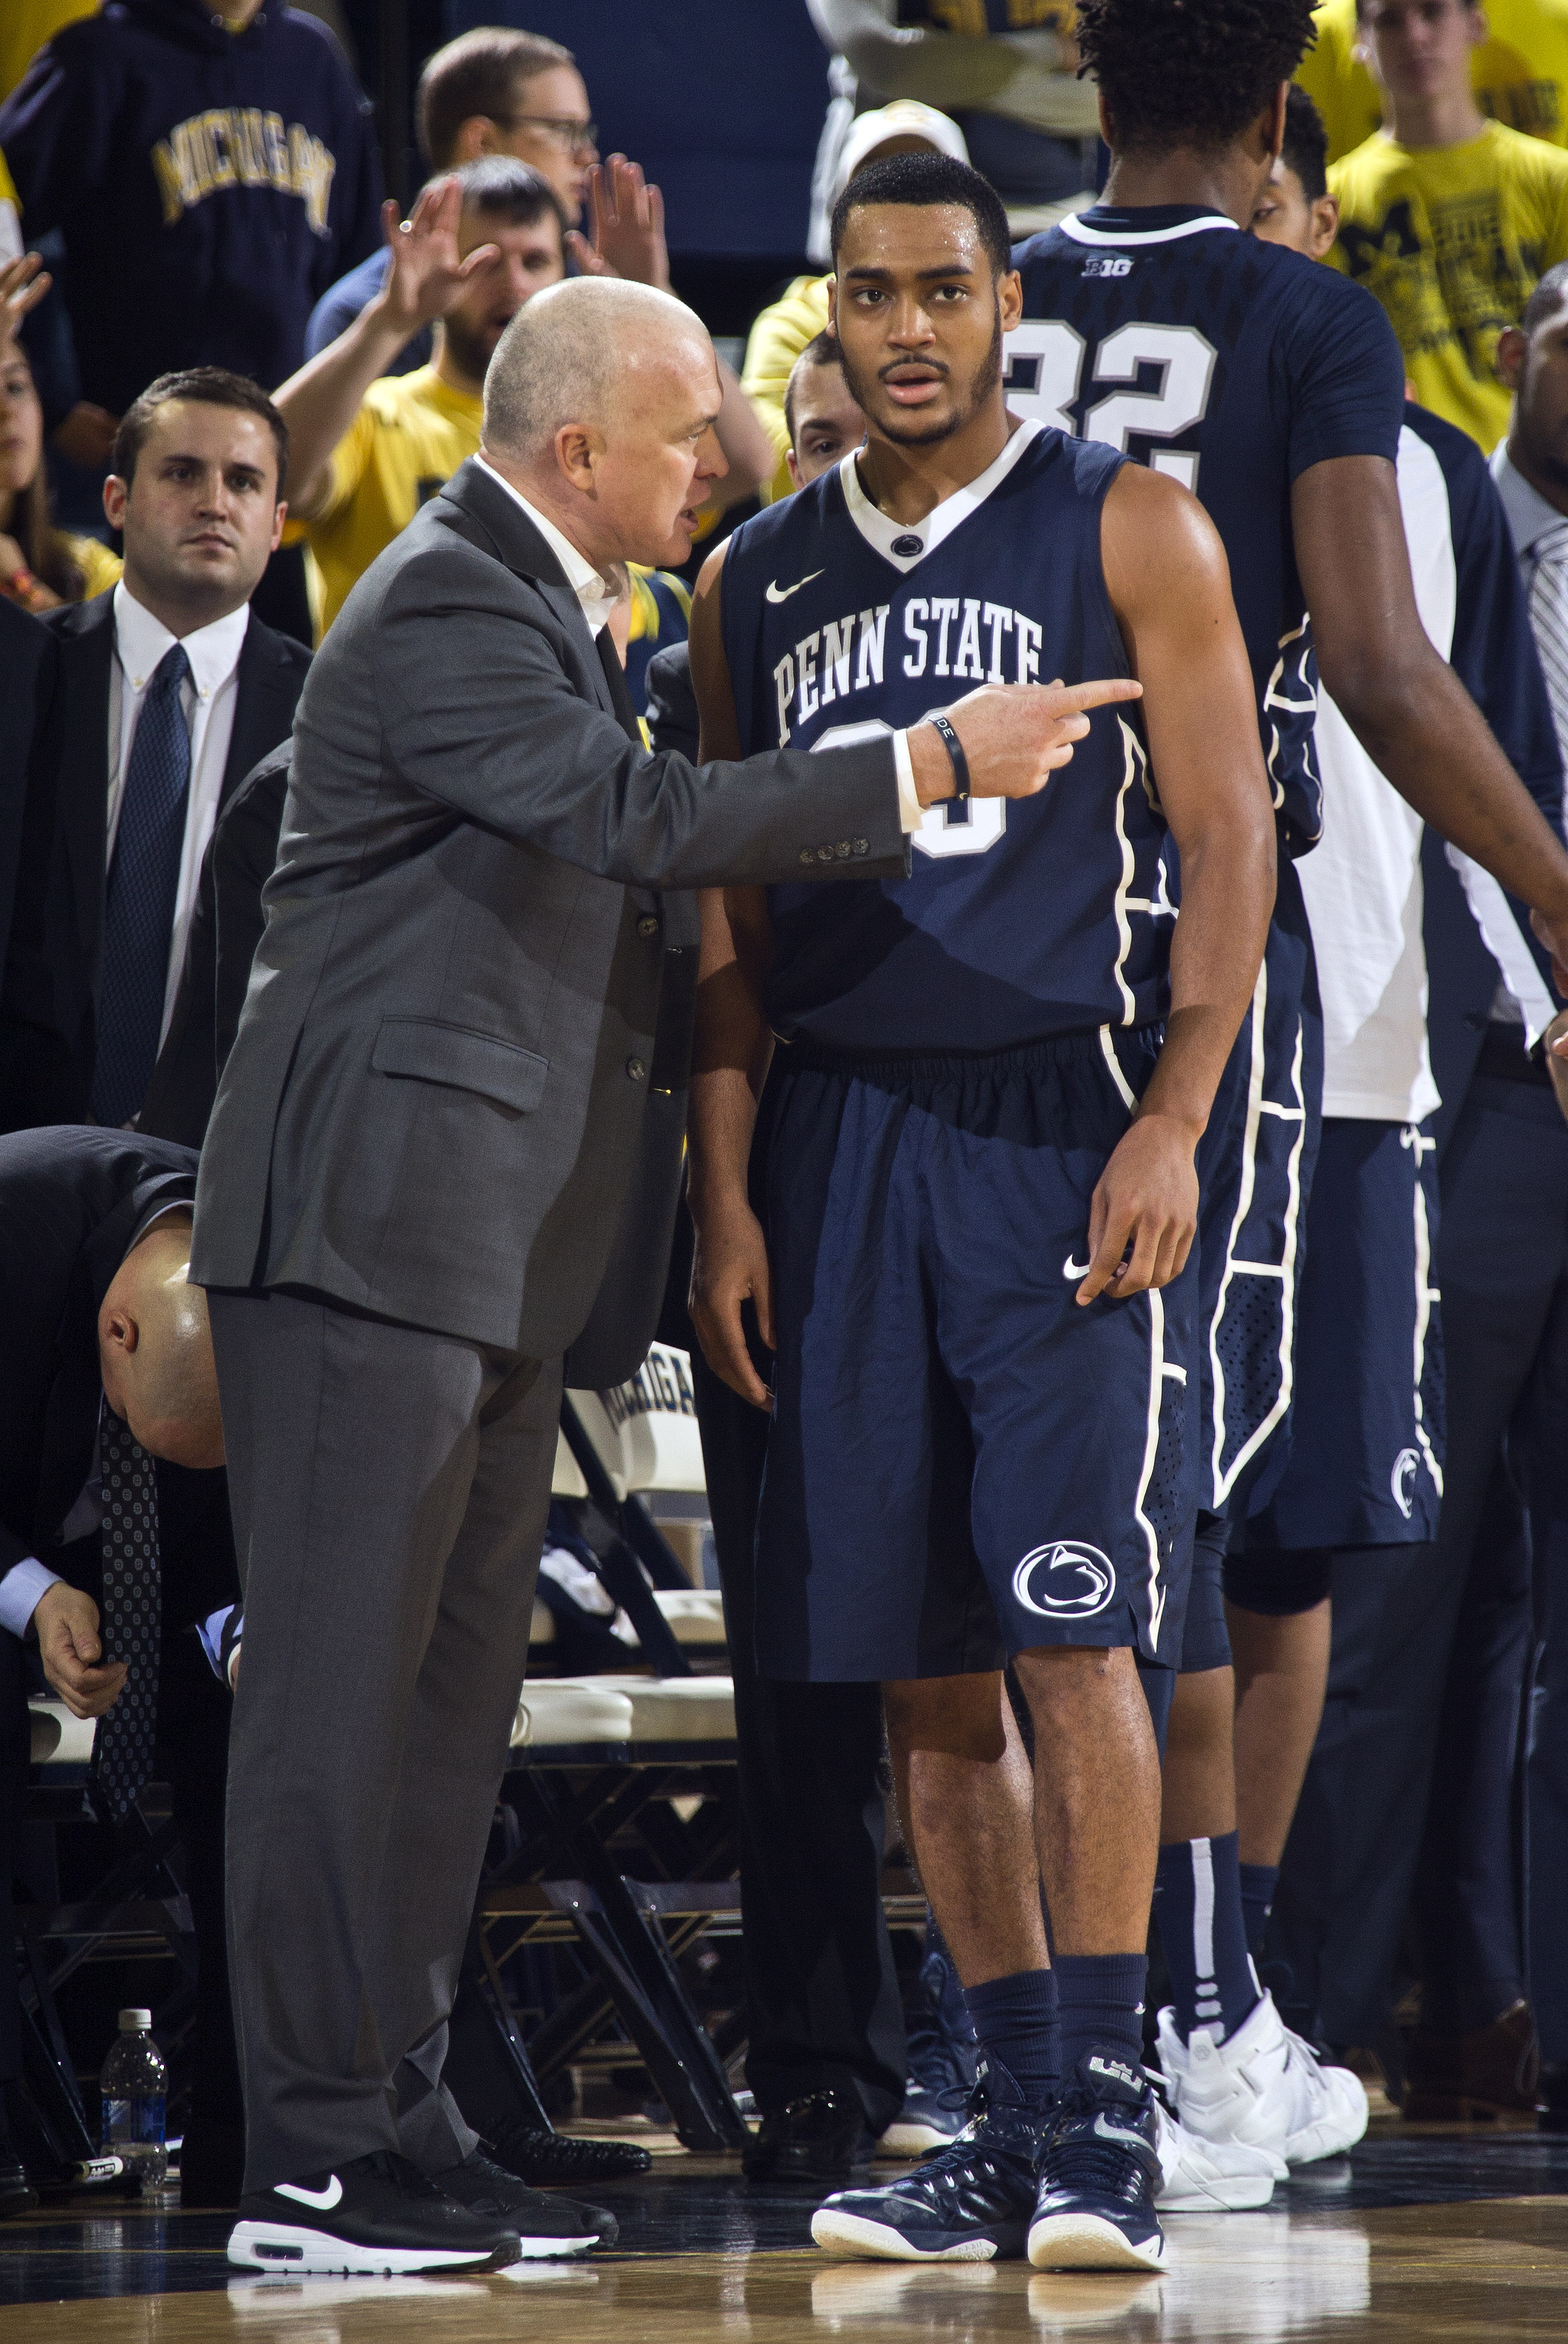 Penn State head coach Patrick Chambers, left, gives instructions to guard Shep Garner (33) during a timeout in the second half of an NCAA college basketball game against Michigan at Crisler Center in Ann Arbor, Mich., Saturday, Jan. 2, 2016. Michigan won